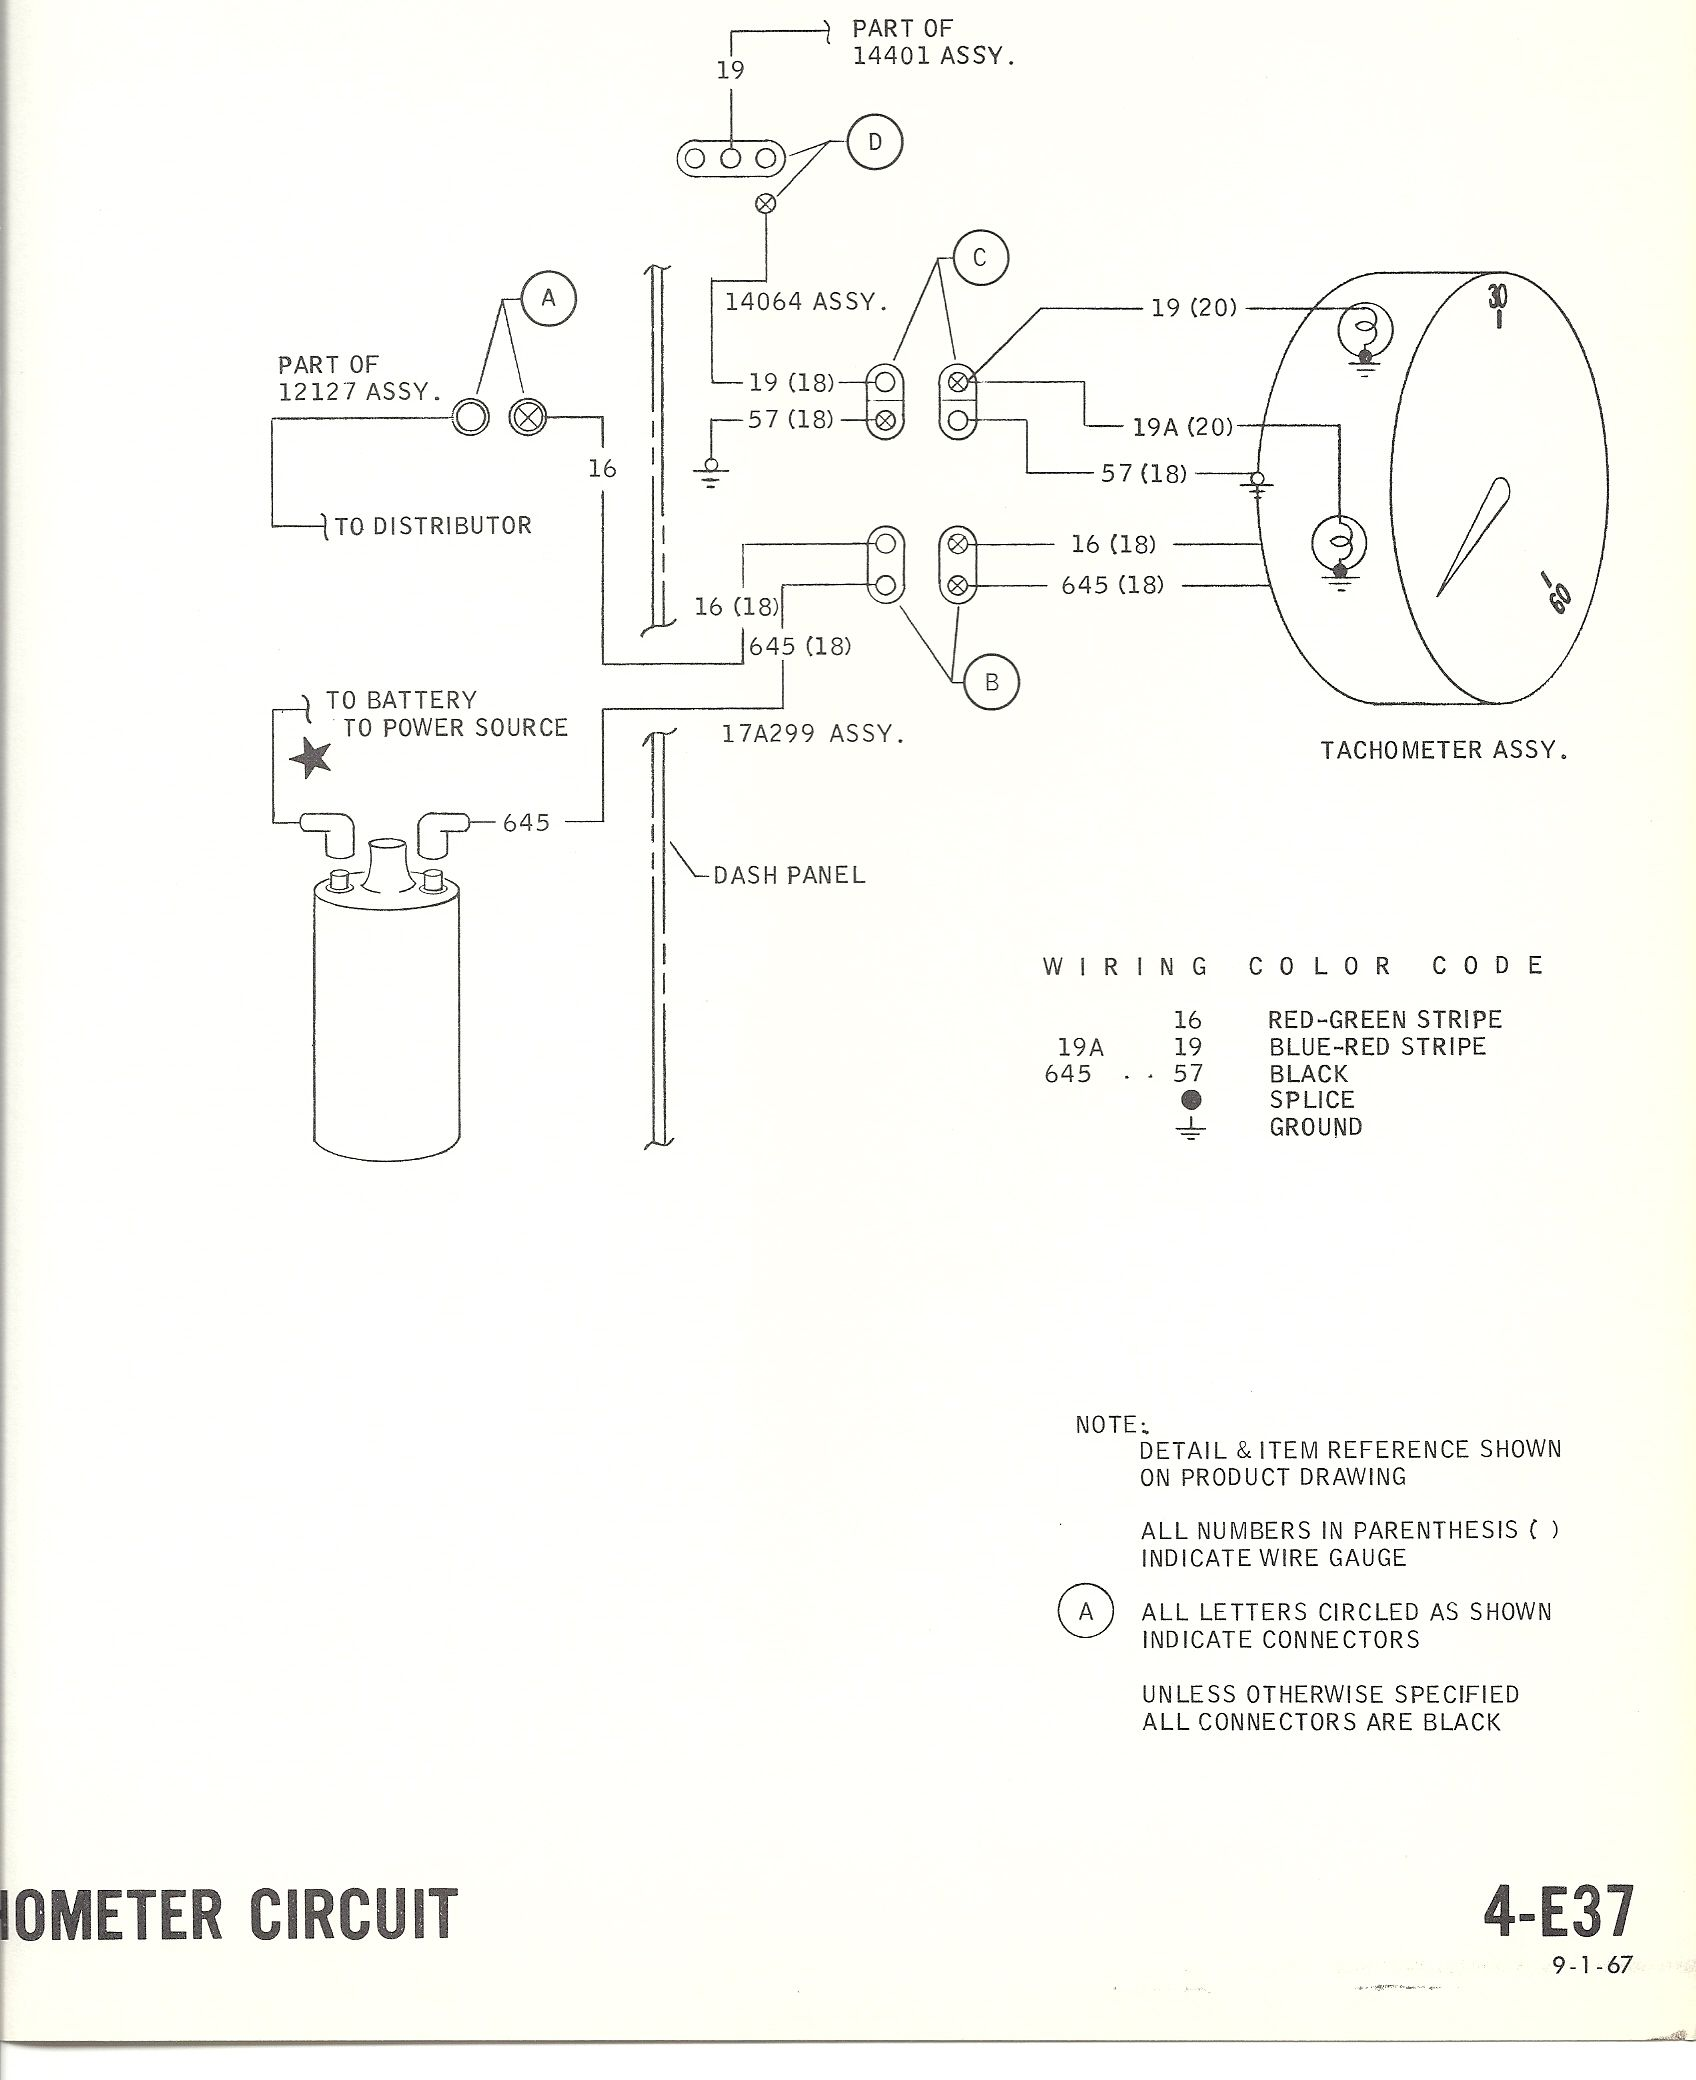 2b2f8e488a4c6a6b870c00f5af30de6c 67 mustang wiring diagram 1965 mustang wiring harness diagram  at aneh.co